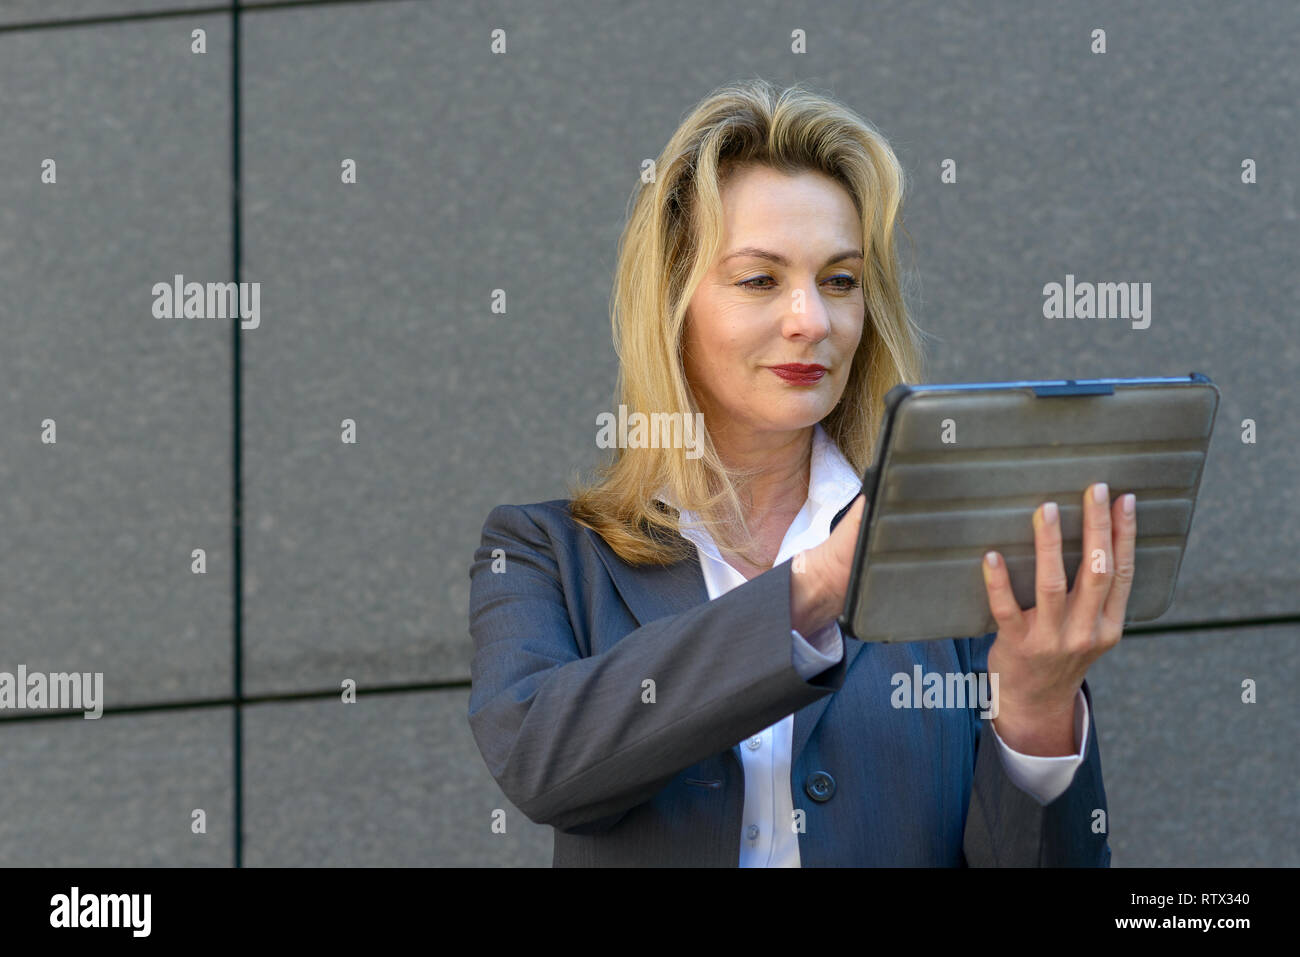 Mature businesswoman using a handheld tablet to surf the internet as she pauses in front of a grey stone wall in town - Stock Image